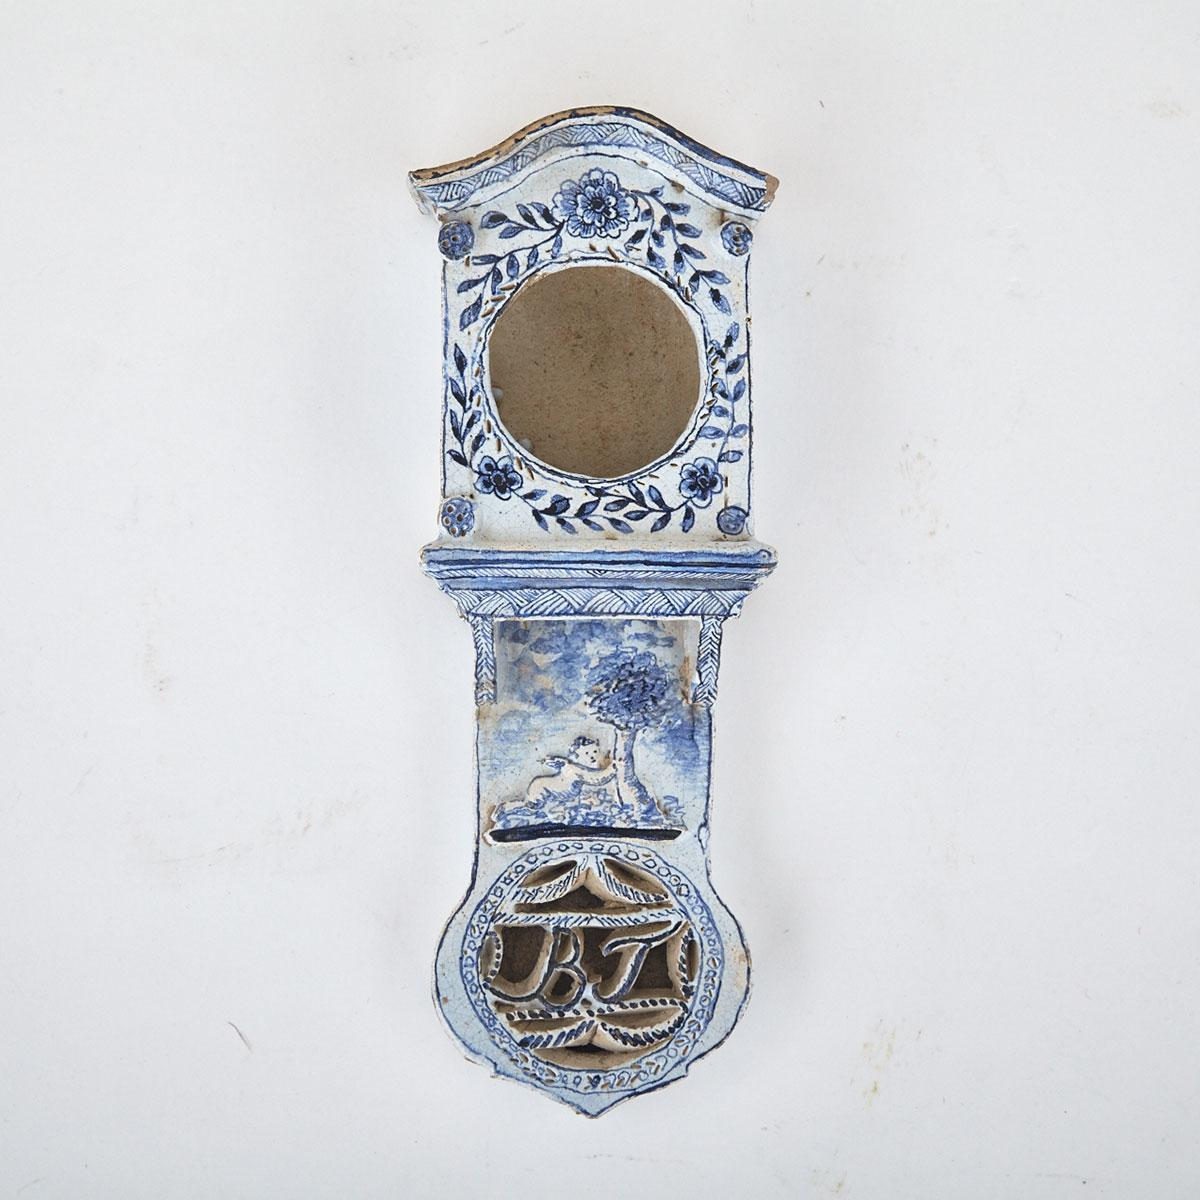 Delft Blue and White Watch Holder, early 19th century